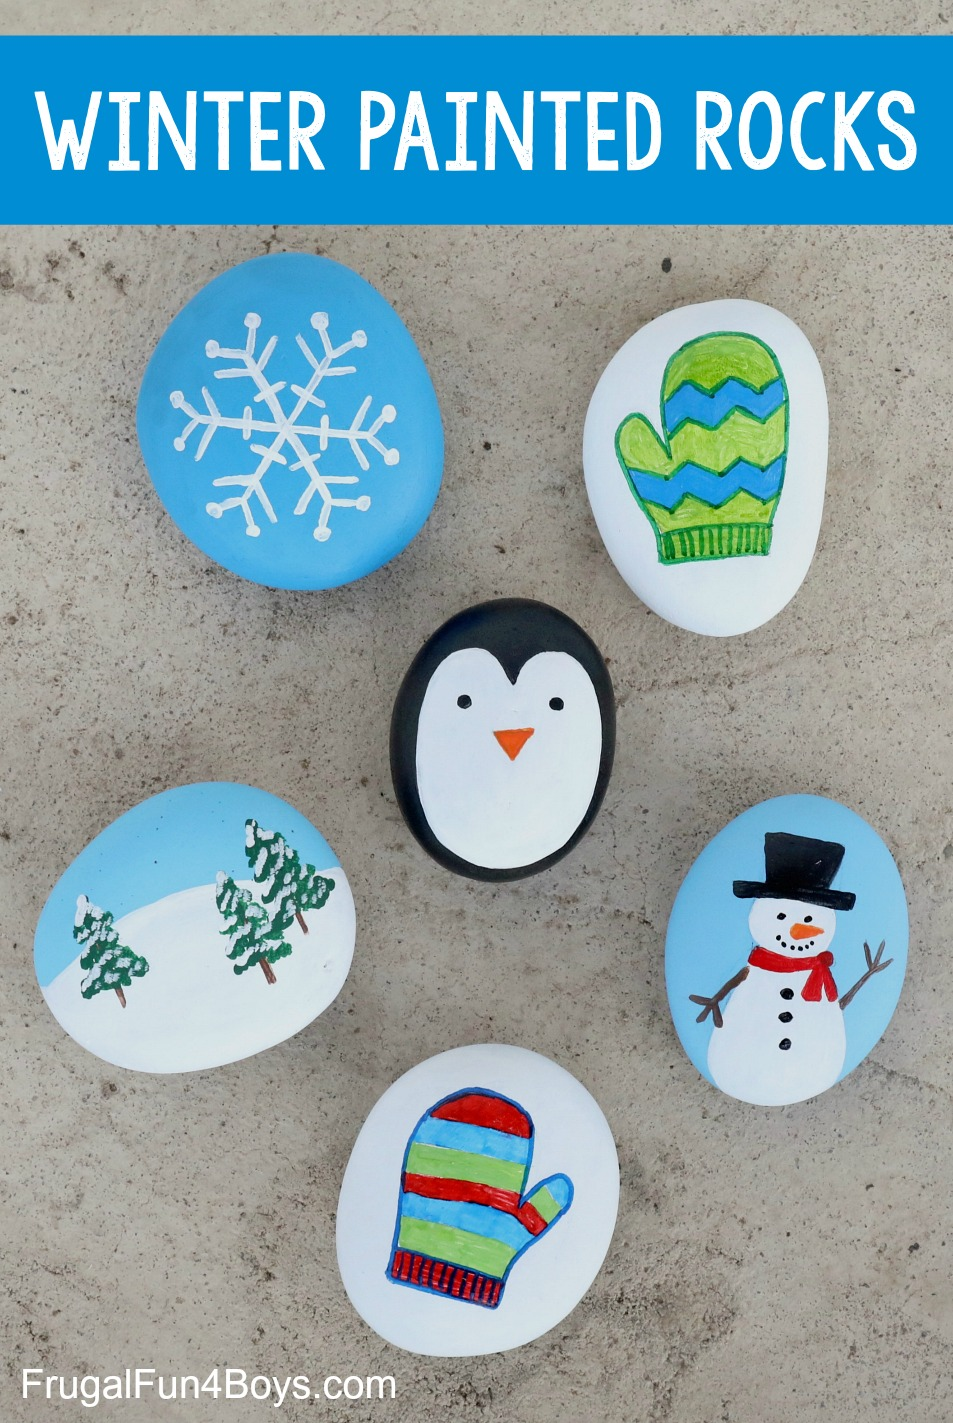 Winter Rock Painting Ideas - Snowflake, Mitten, Penguin, Snowman, Snowy Scene